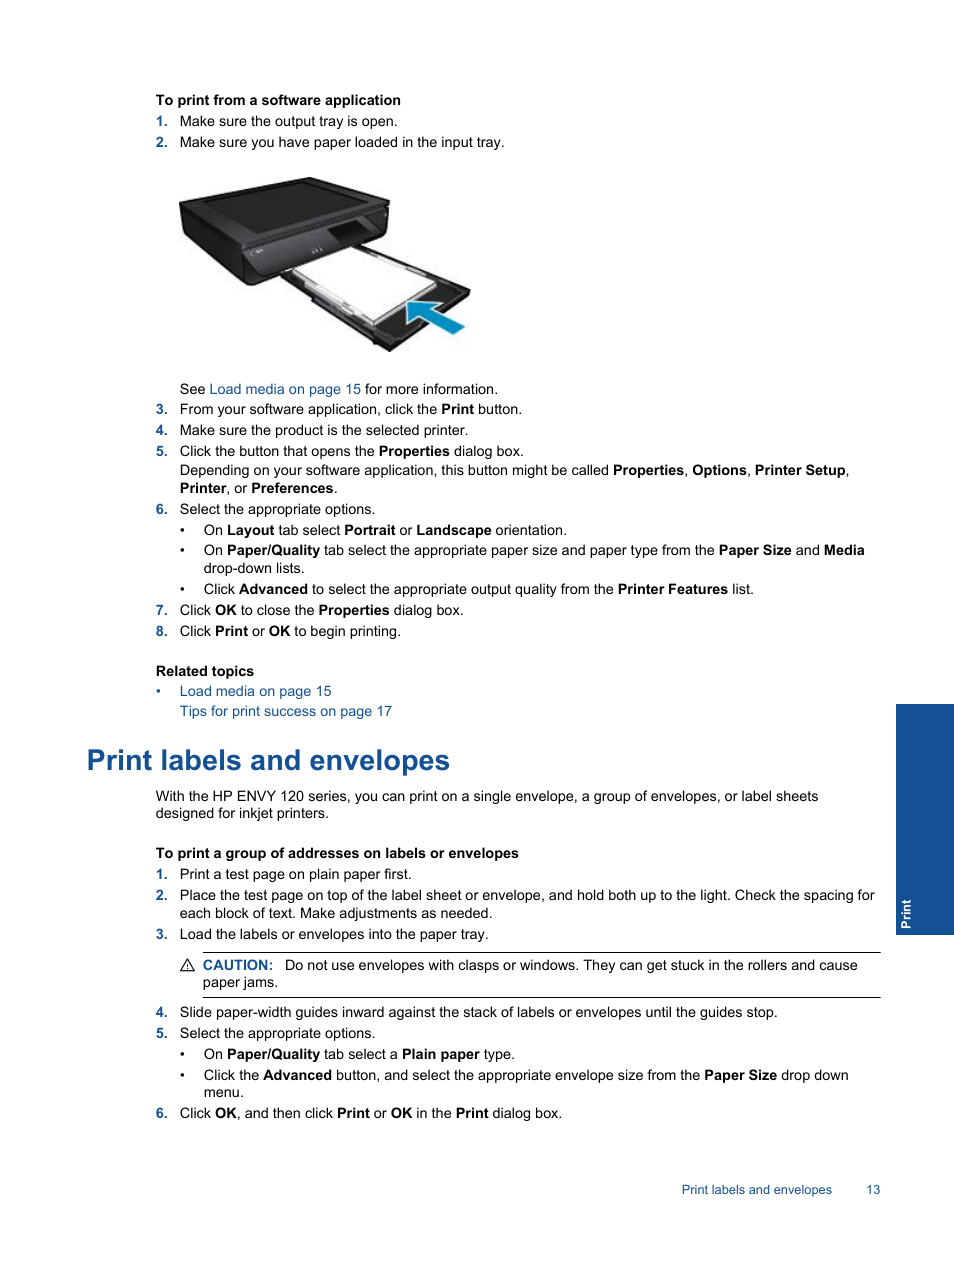 How to Load Labels Into an Inkjet Printer recommend